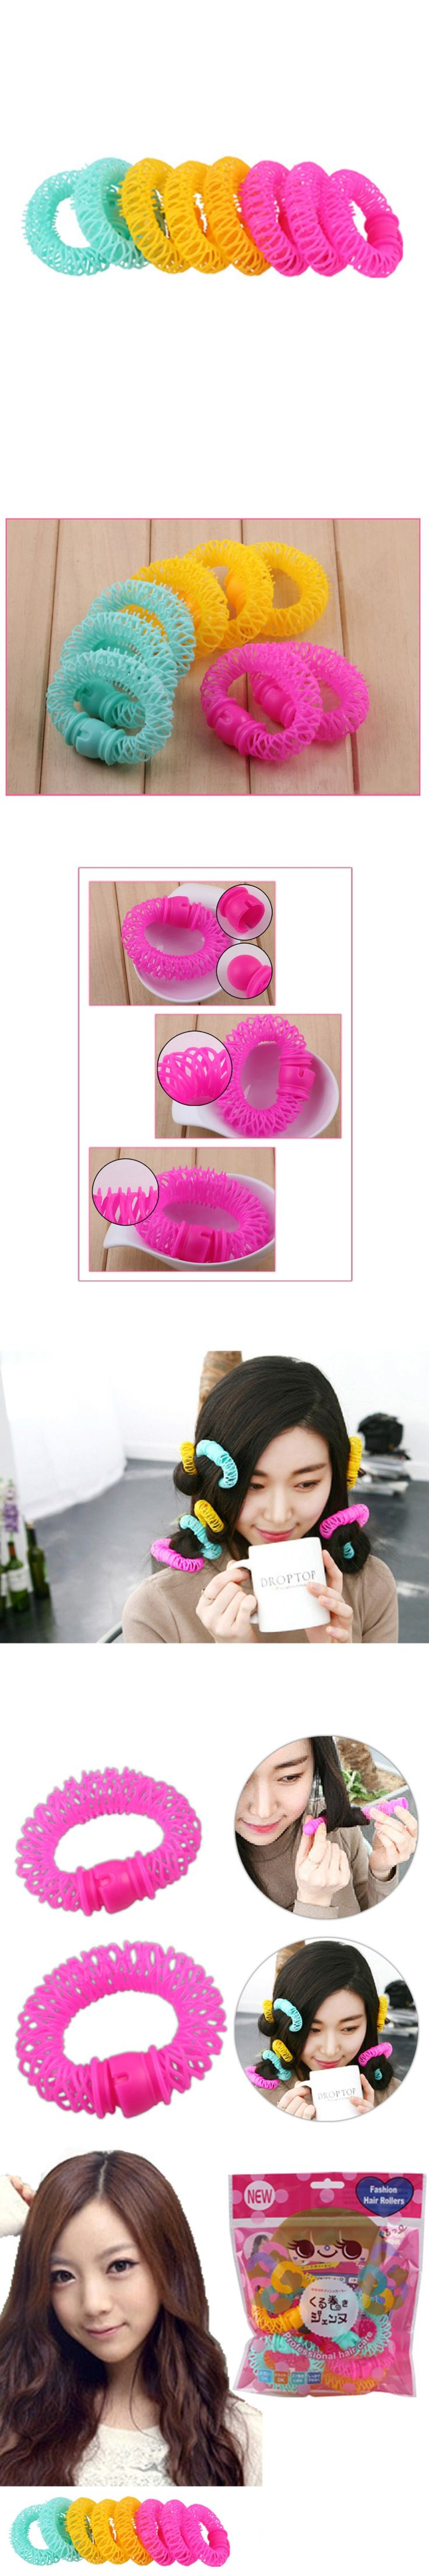 8piece/A doughnut curler; a large curling tool made of plastic without hurting the hair